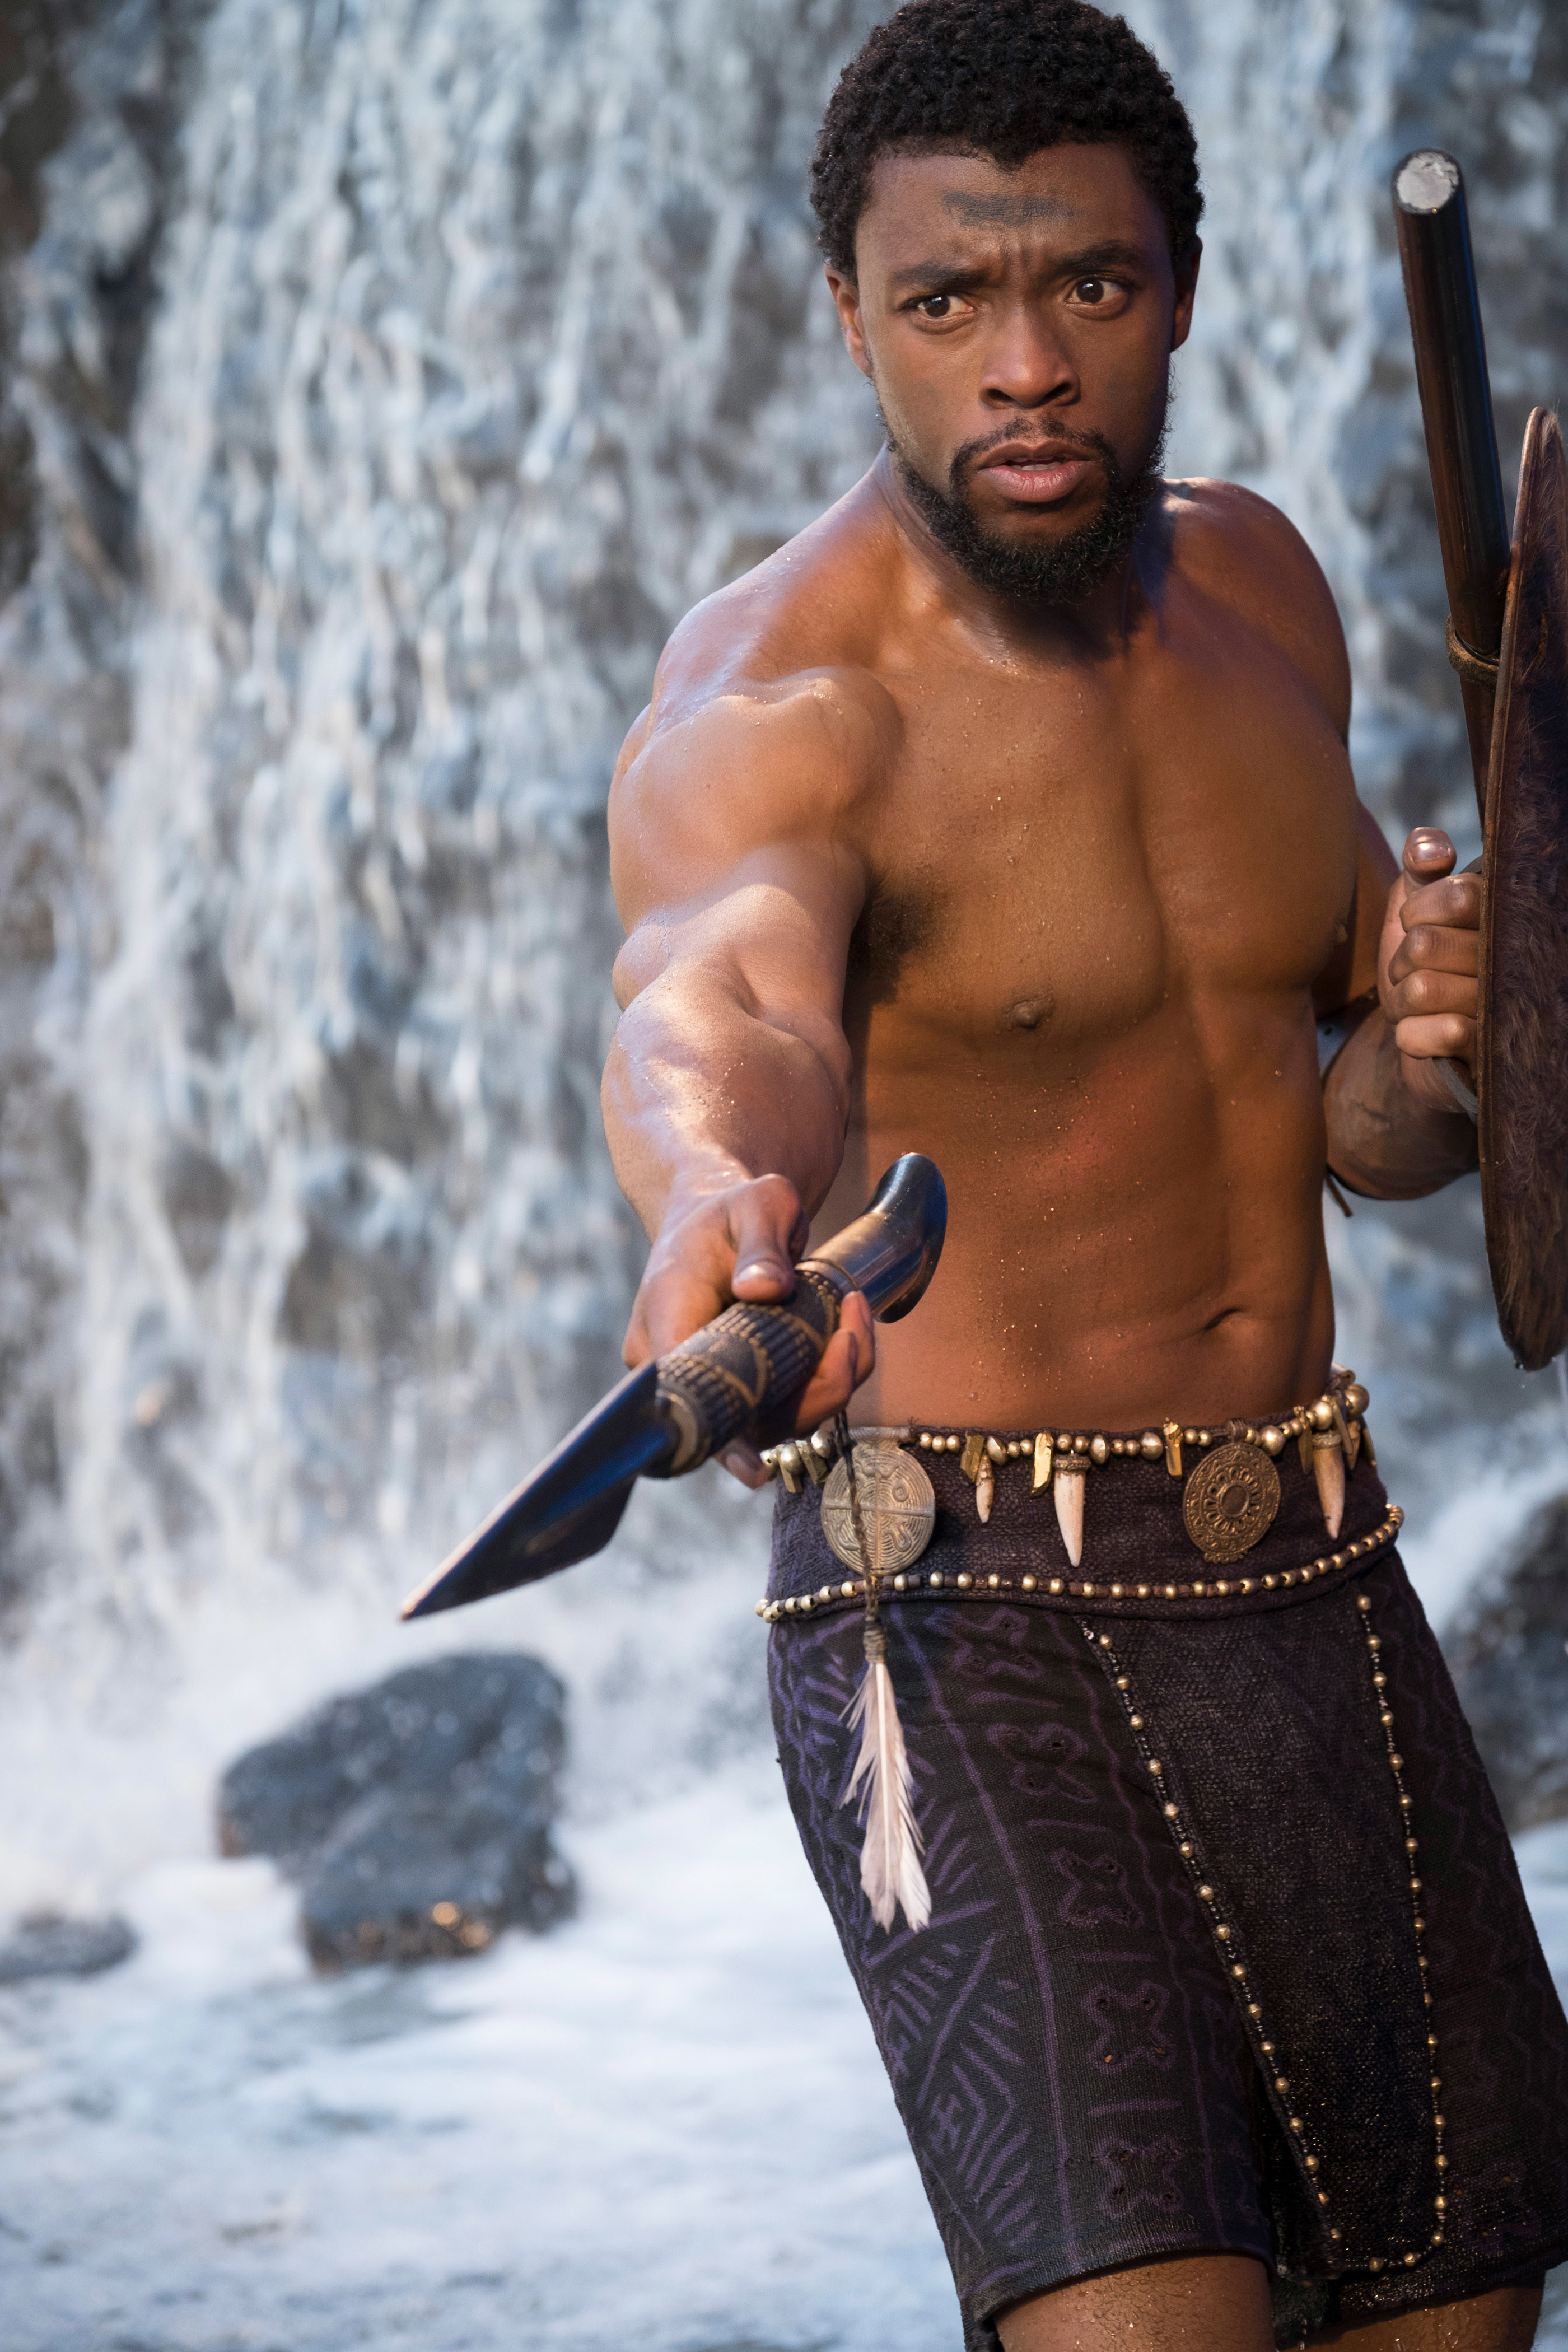 Boseman shirtless and holding a spear in Black Panther fight scene